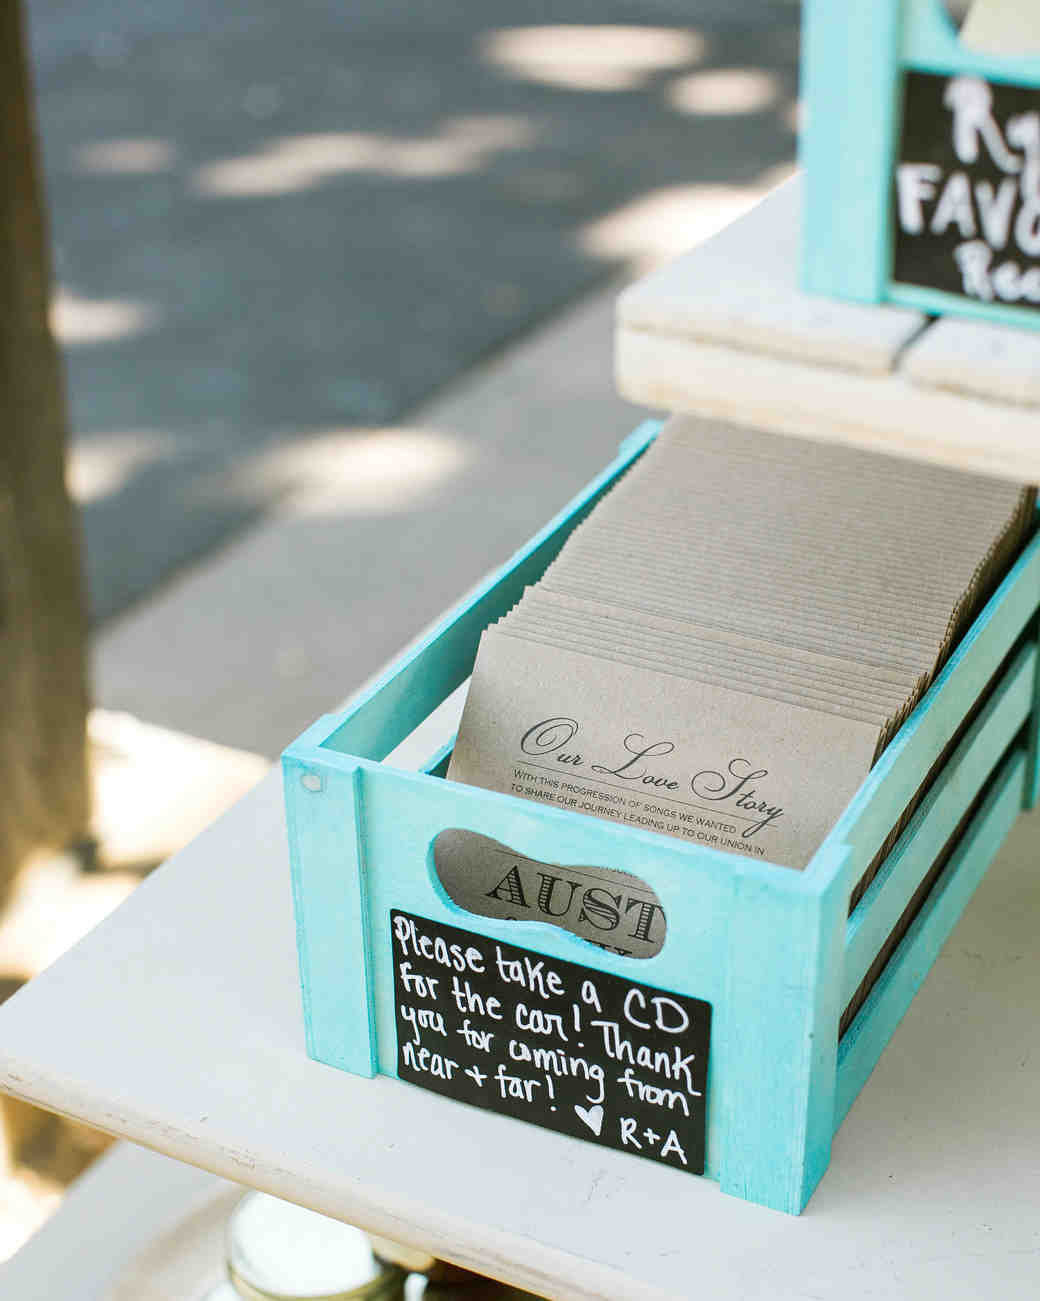 ideas, wedding - Wedding Favours To End The Day on a High Note